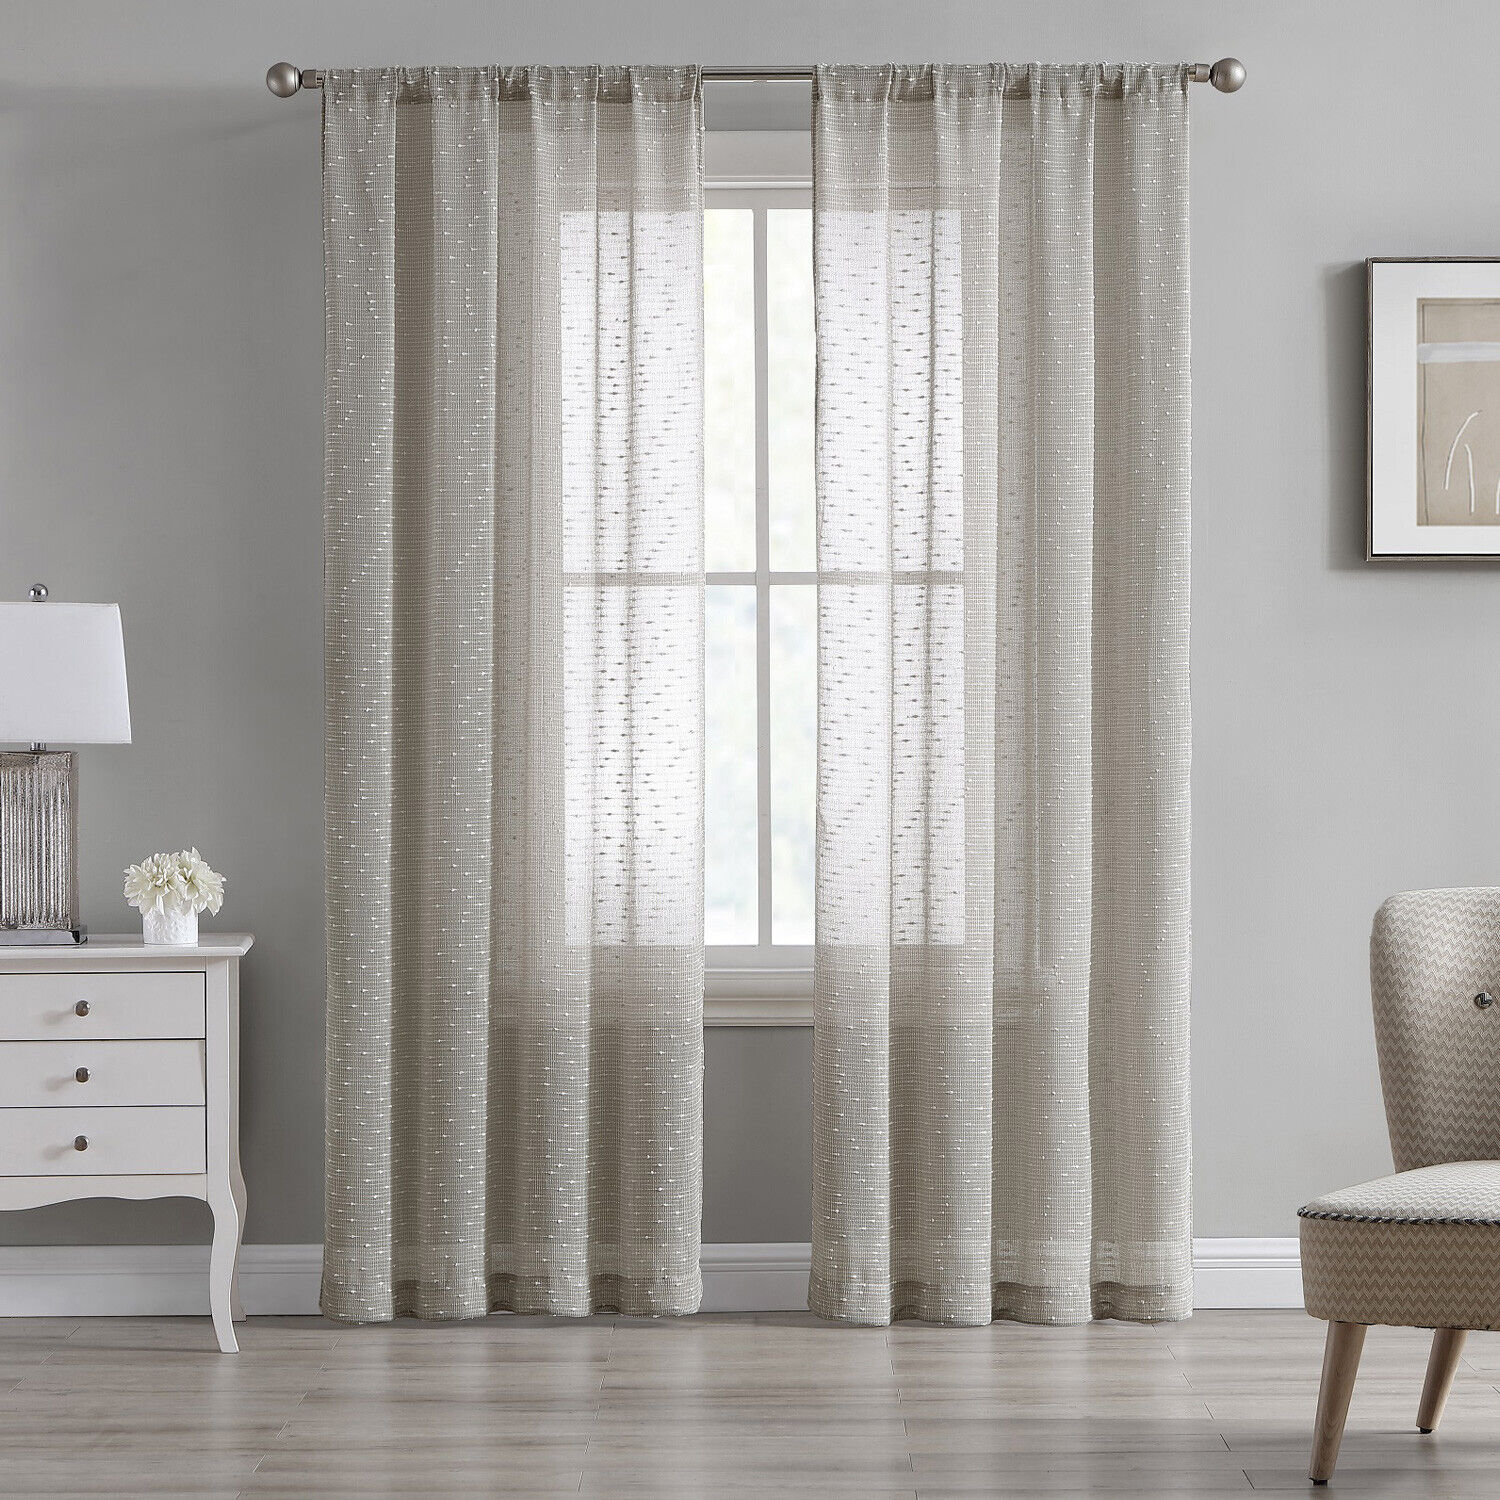 84″ Sheer Tan Beige Textured 2-Panel Pair Window Curtains Rod Pocket Drapes Curtains & Drapes